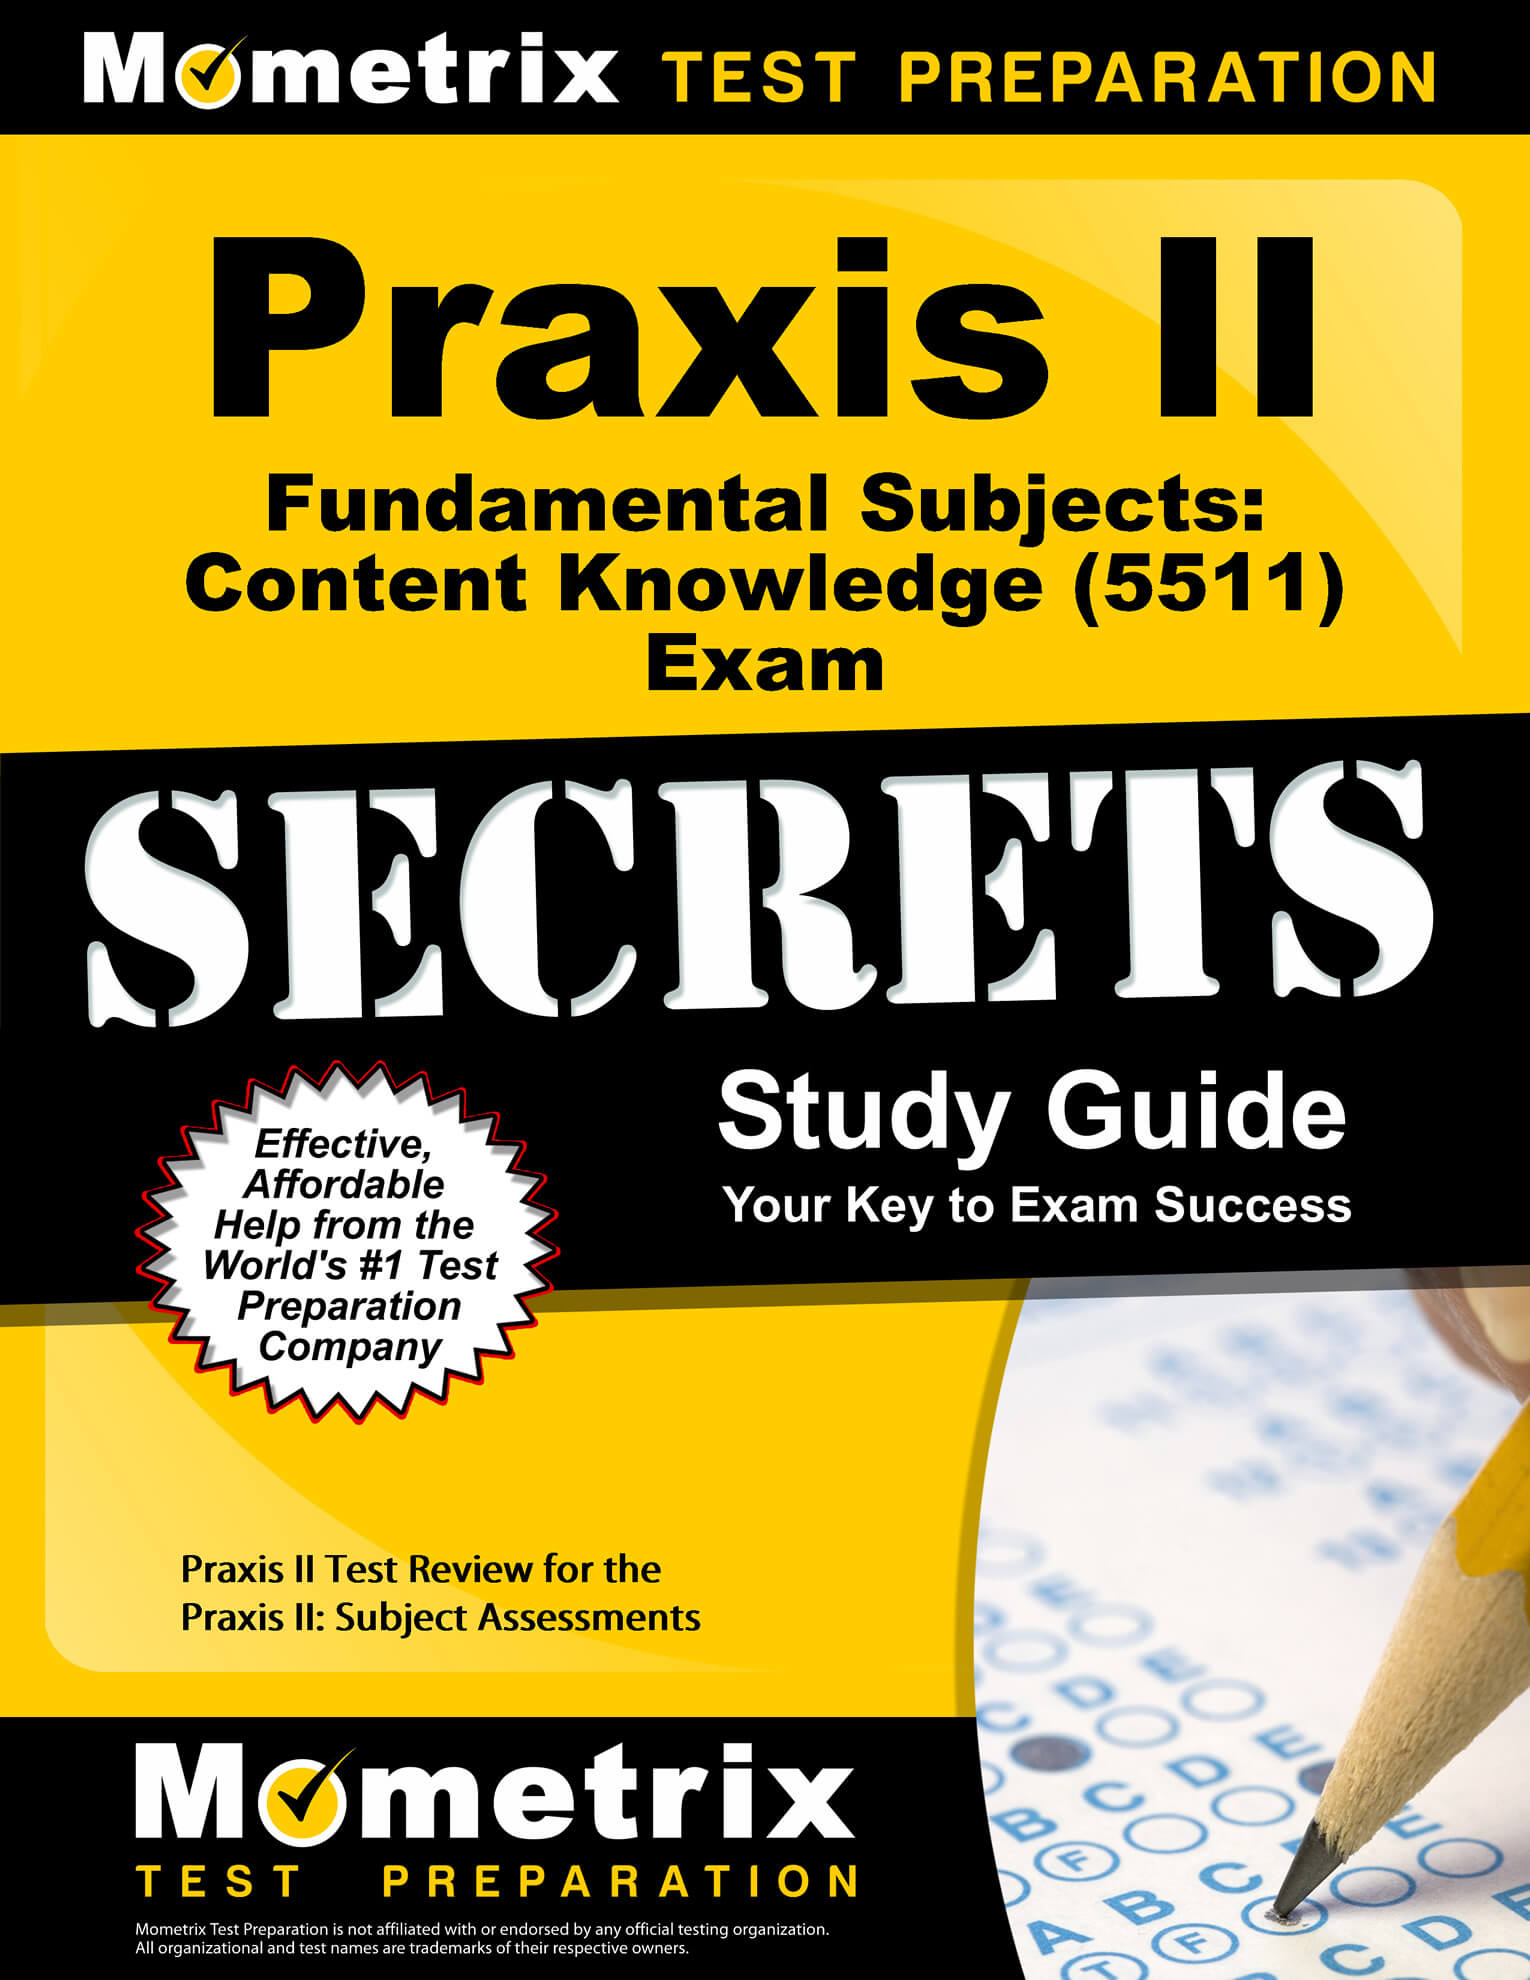 Praxis II Fundamental Subjects: Content Knowledge Study Guide